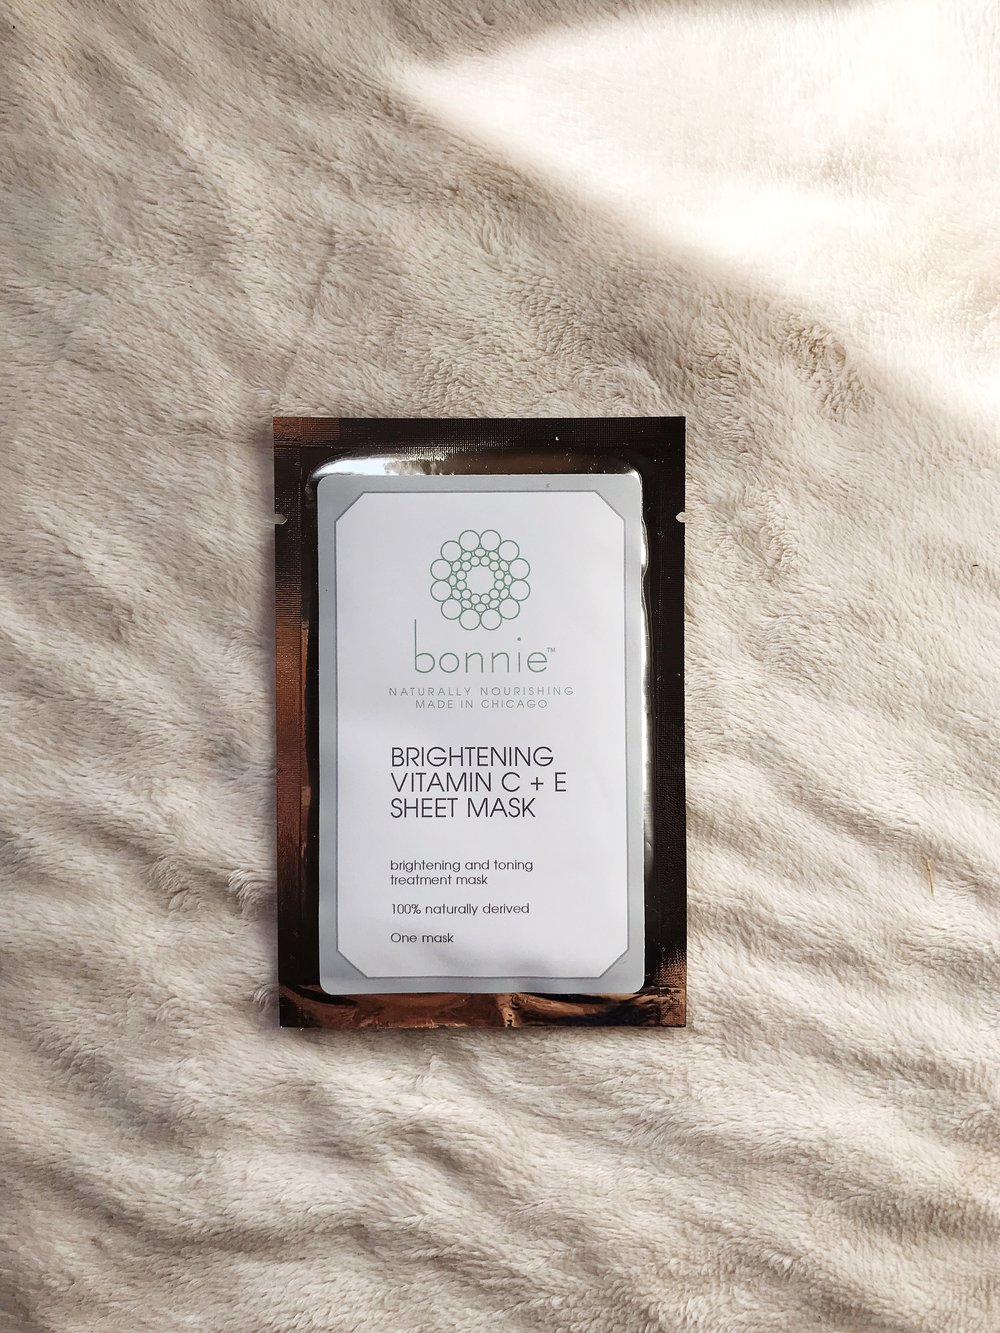 Bonnie Brightening Vitamin C + E Sheet Mask | Non Toxic Beauty | Mallorie Owens